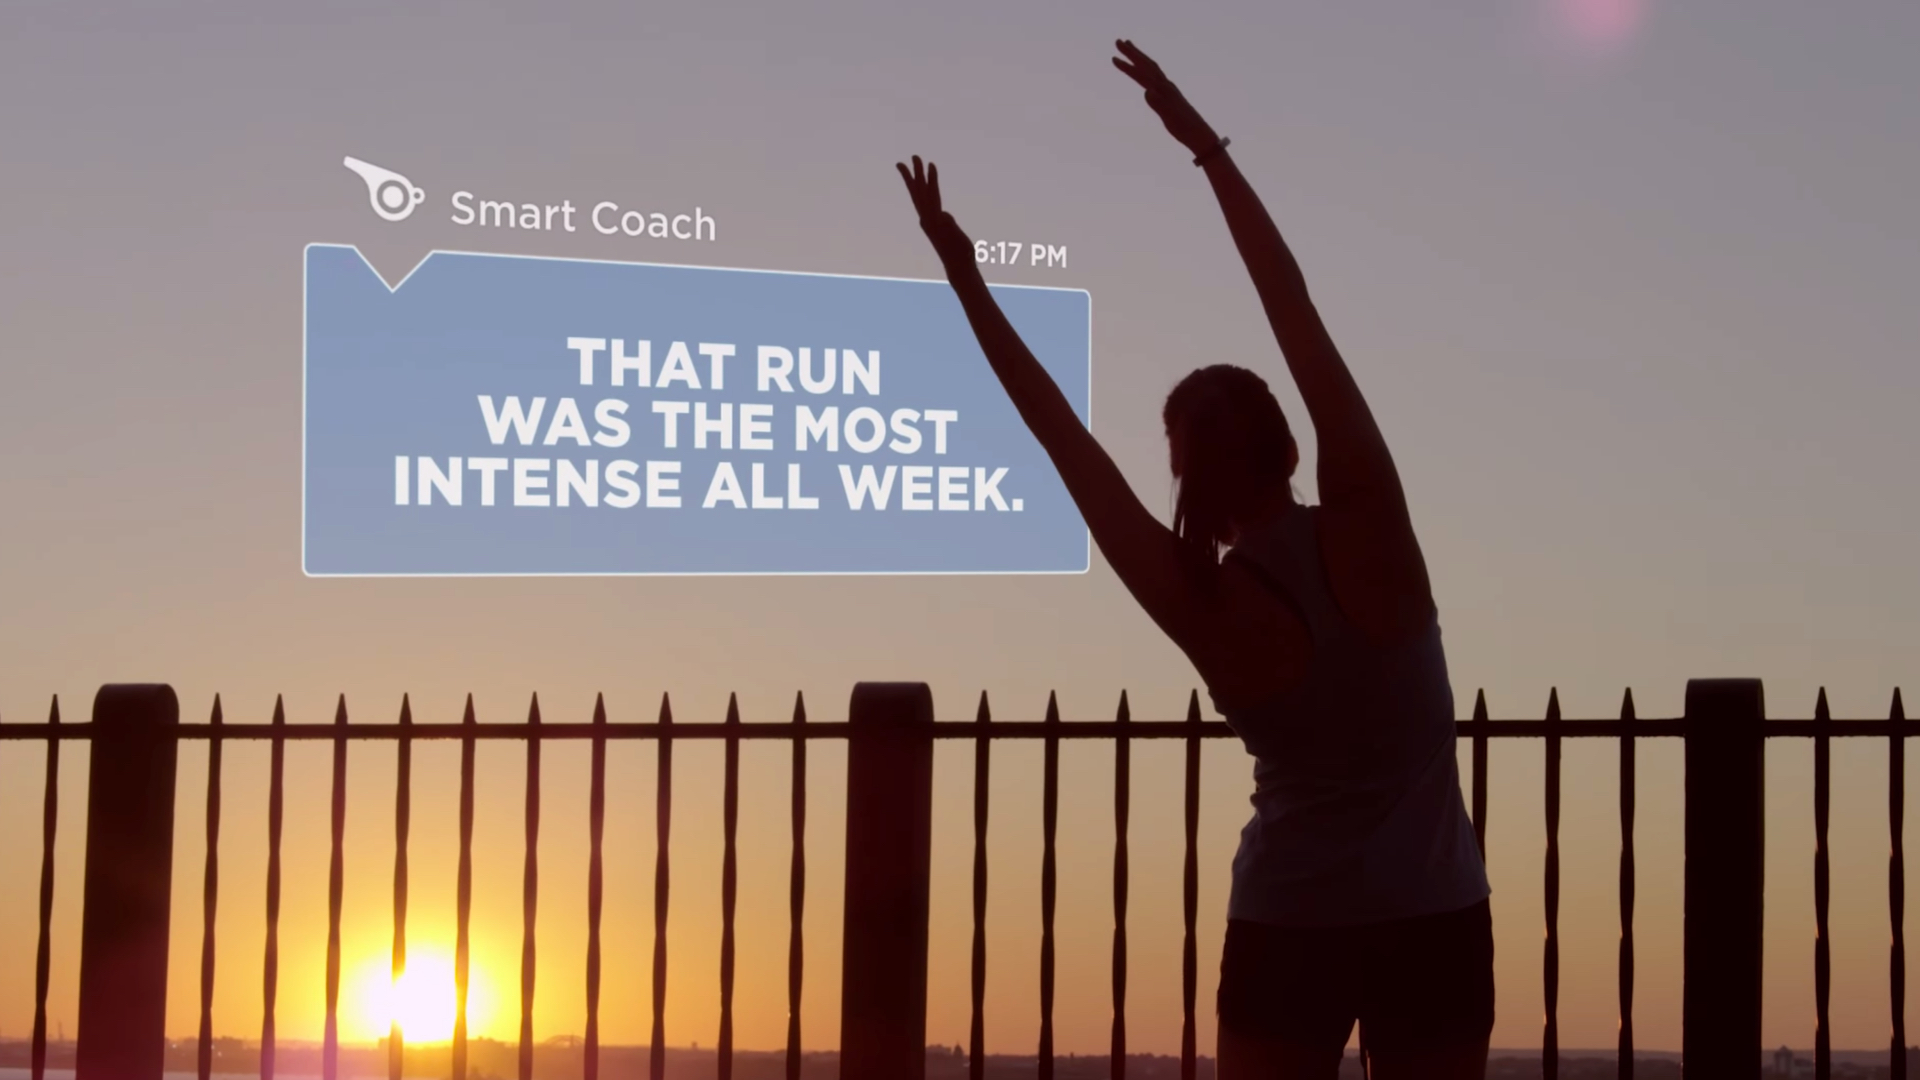 Research and UX for UP's Smart Coach